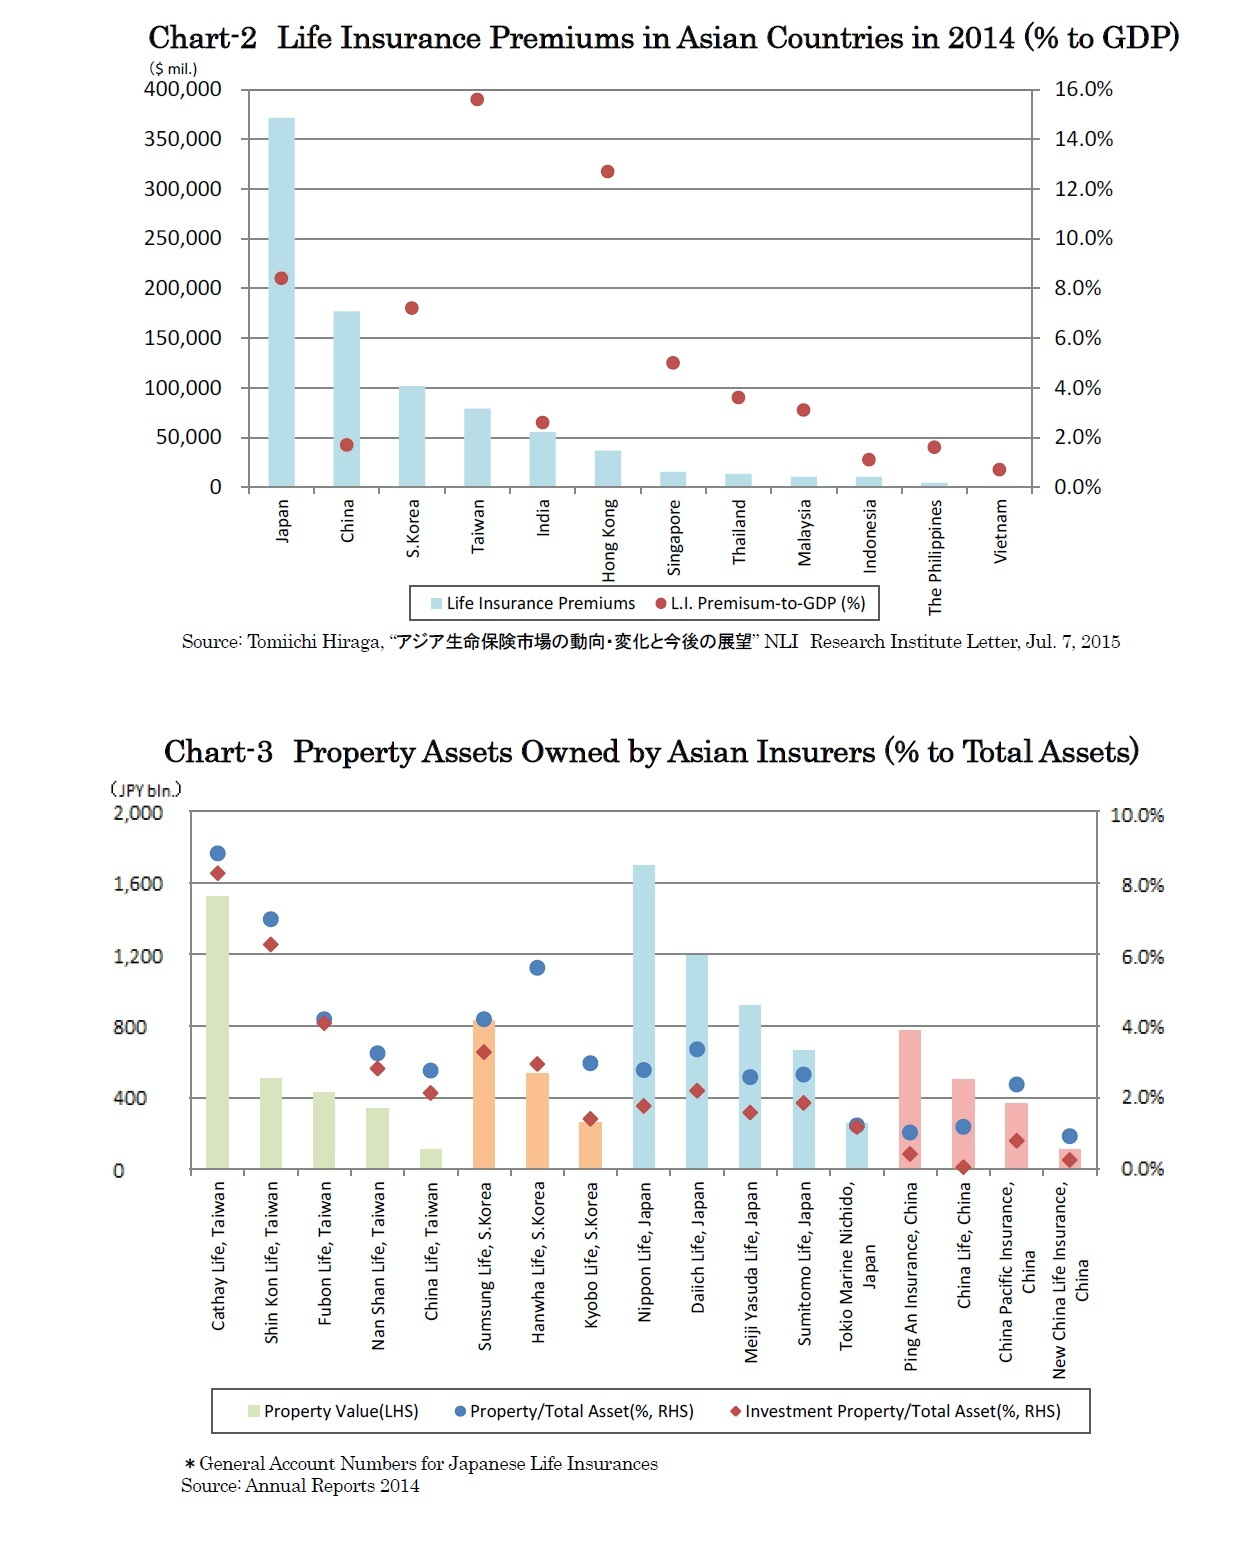 Chart-2 Life Insurance Premiums in Asian Countries (% to GDP)/Chart-3 Property Assets Owned by Asian Insurers (% to Total Assets)